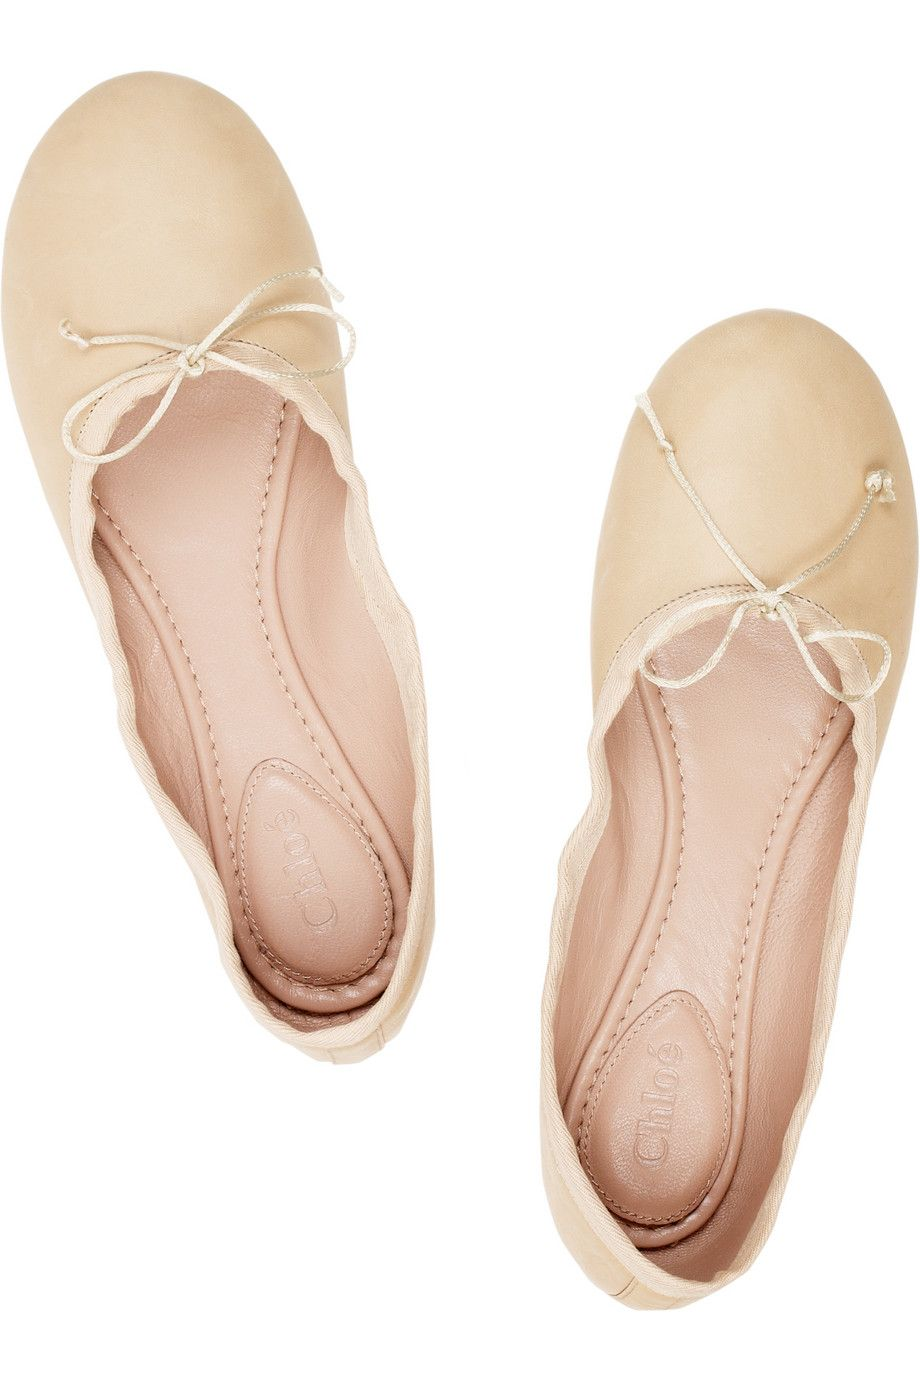 84d3b4233 chloe leather ballet flats. i die. | Shoes | Leather ballet flats ...